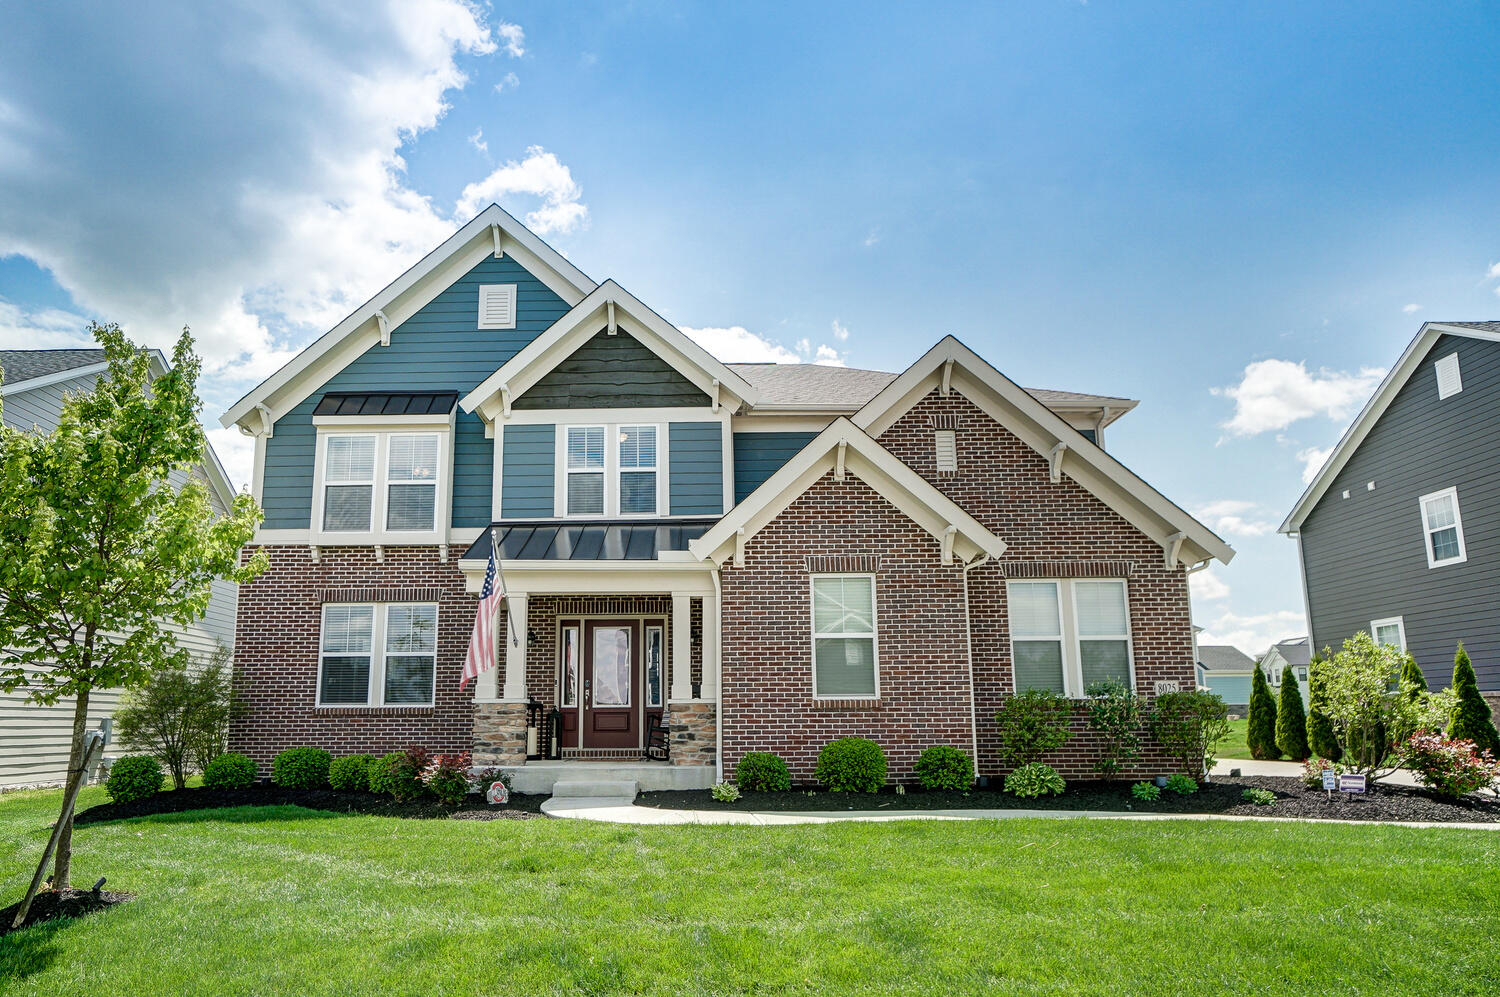 8025 Finch Leaf Drive Property Photo - Plain City, OH real estate listing